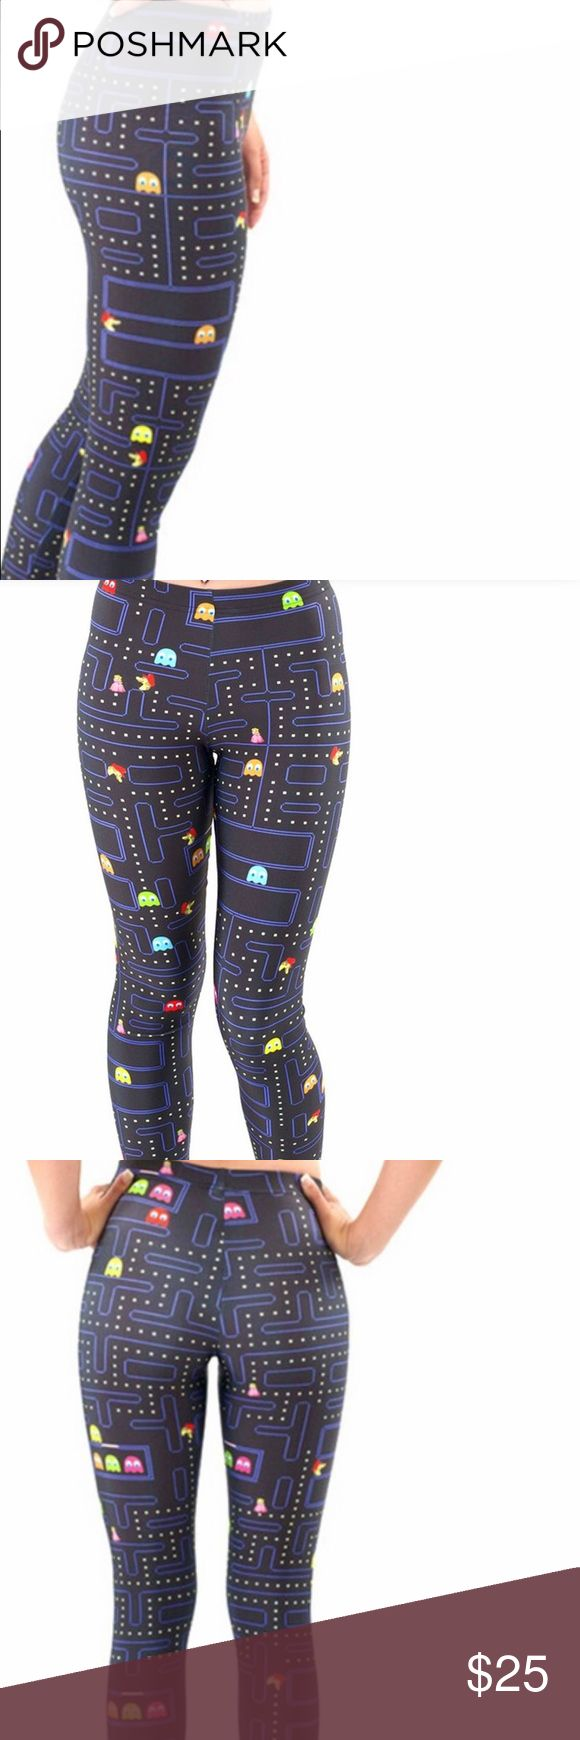 ☄️RESERVED! PAC MAN LYCRA LEGGINGS SZ MEDIUM ☄️RESERVED! NWT PAC MAN LYCRA LEGGINGS SZ MEDIUM FULL LENGTH RETRO STYLE 1980s. EXPECT CONSTANT COMMENTS & COMPLIMENTS! MIDWAY Pants Leggings